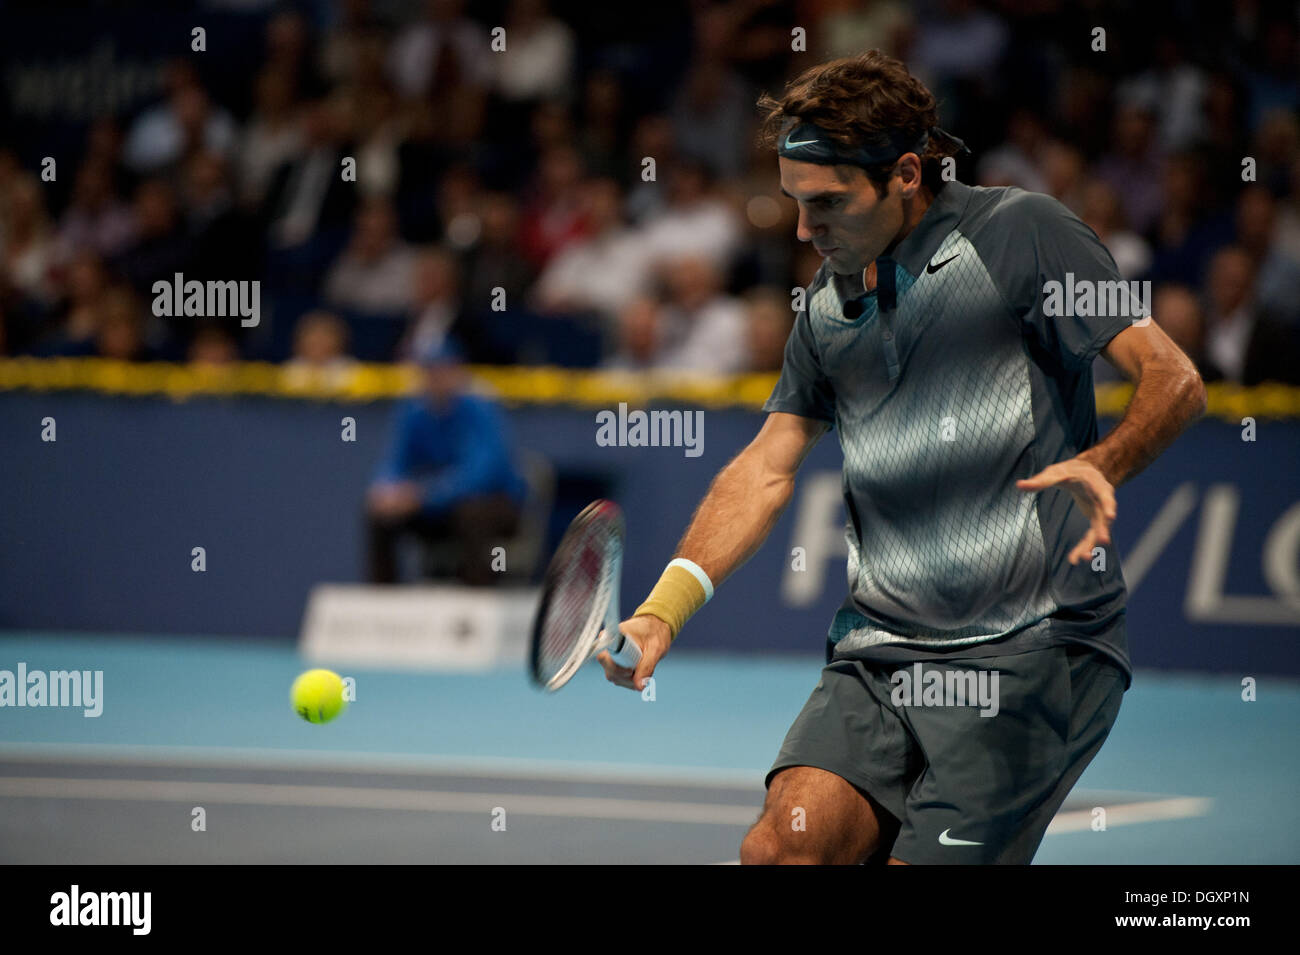 Basel, Switzerland. 27th Oct, 2013. Roger Federer (SUI) hits the ball during the final of the Swiss Indoors at St. Jakobshalle on Sunday. Photo: Miroslav Dakov/ Alamy Live News - Stock Image